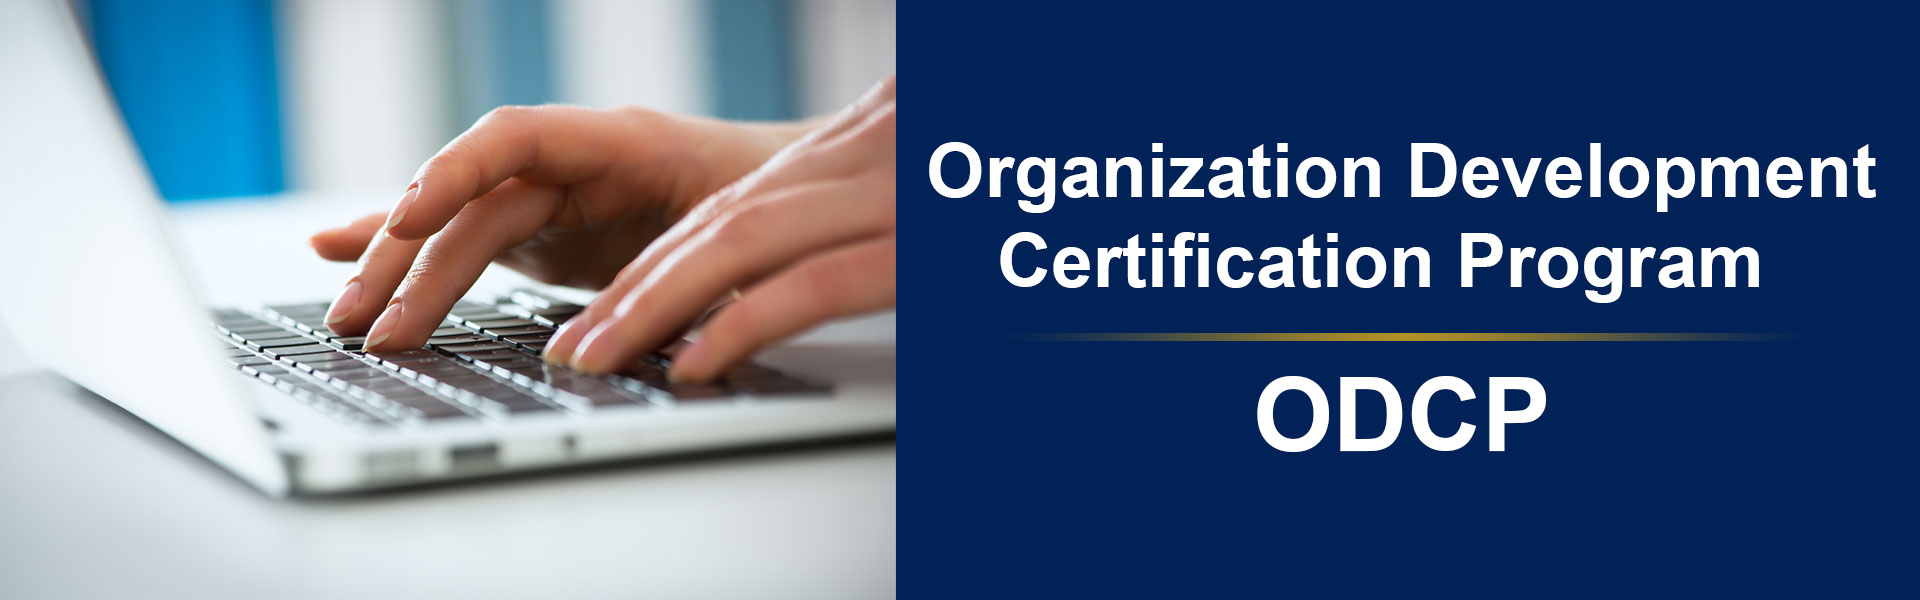 Organization Development Certification Program